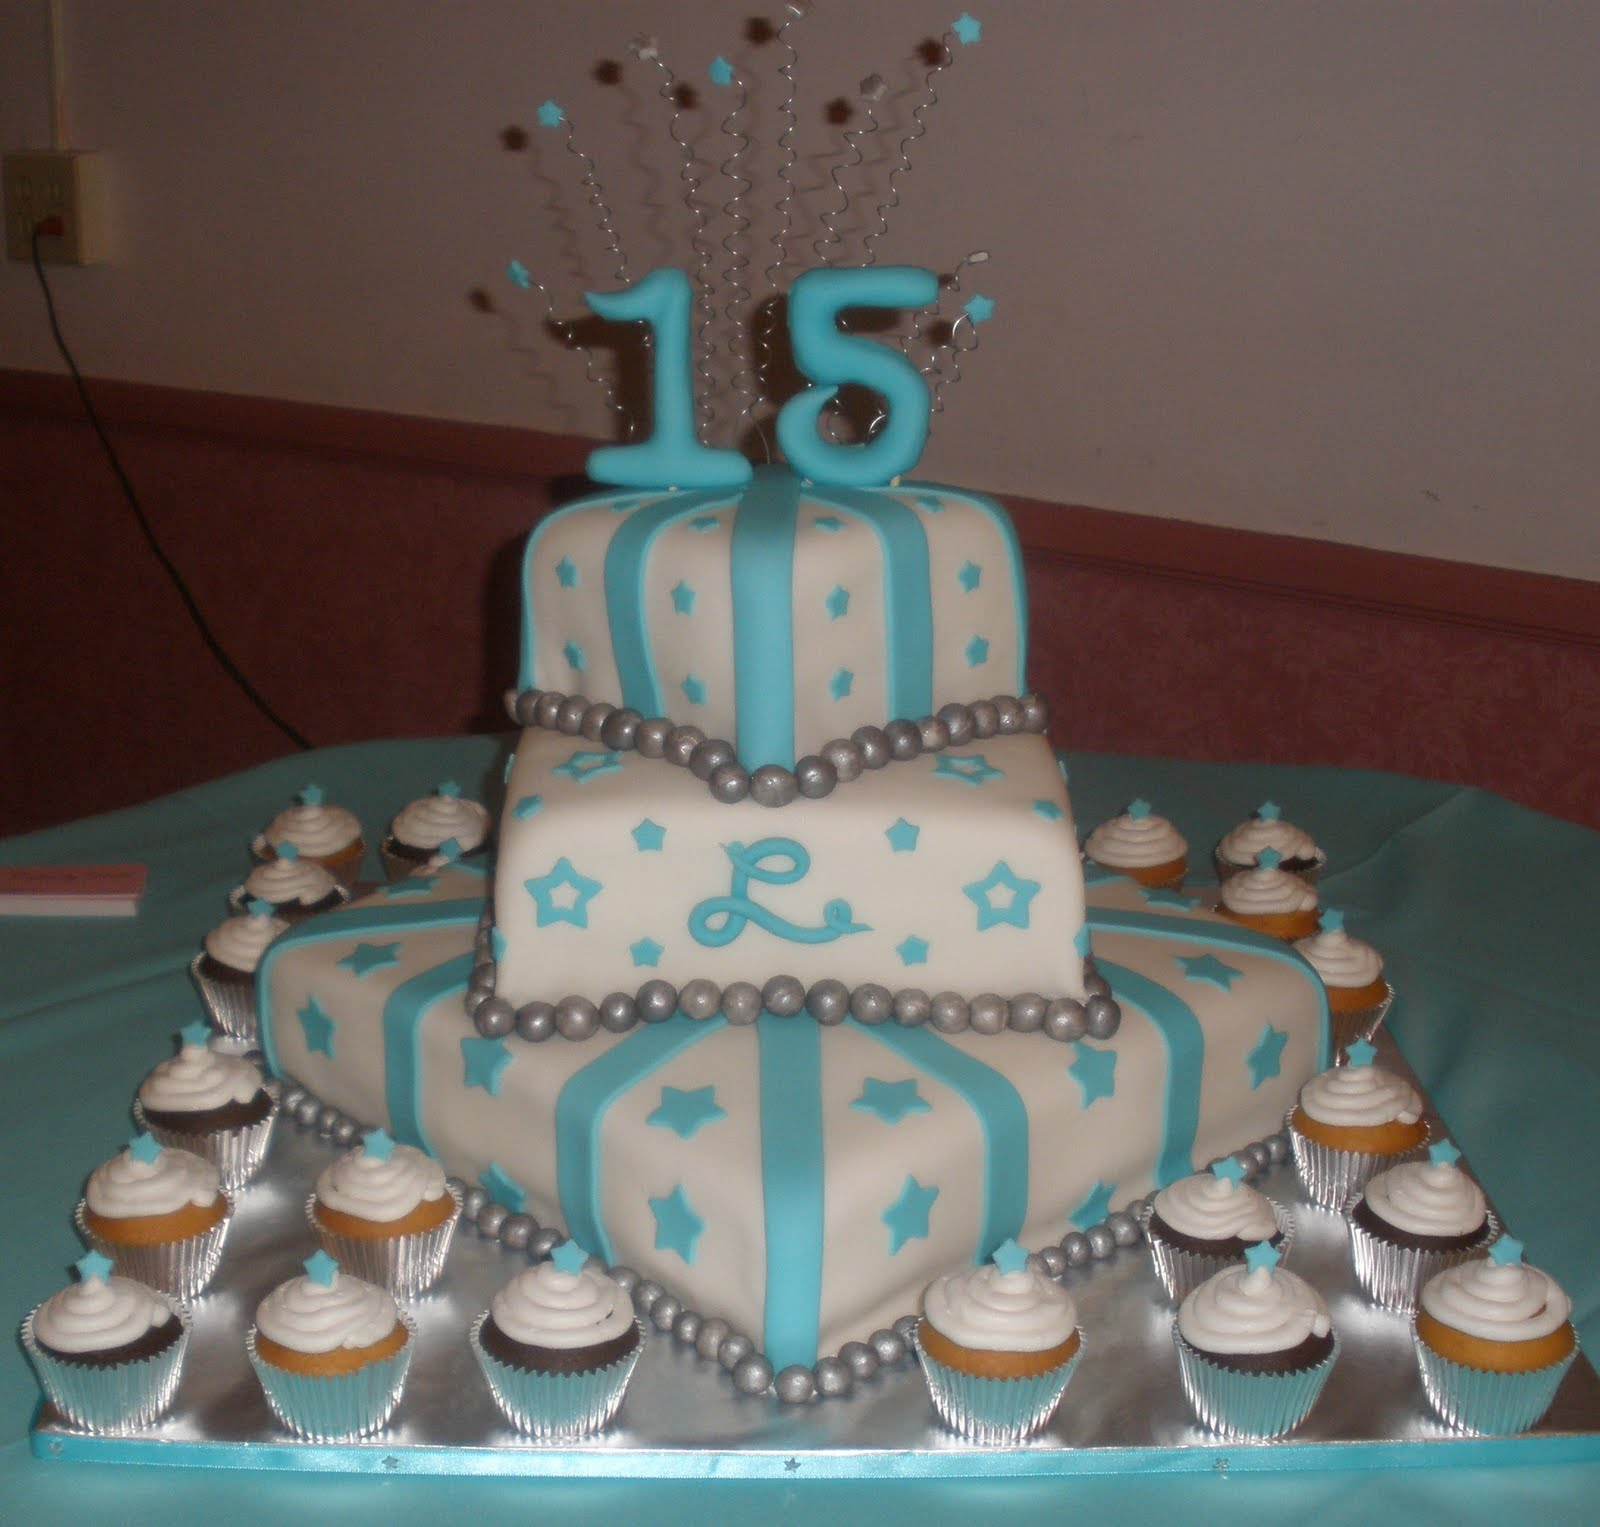 Cake Pictures For Quinceaneras : Cakes By Perla: Quinceanera Cake